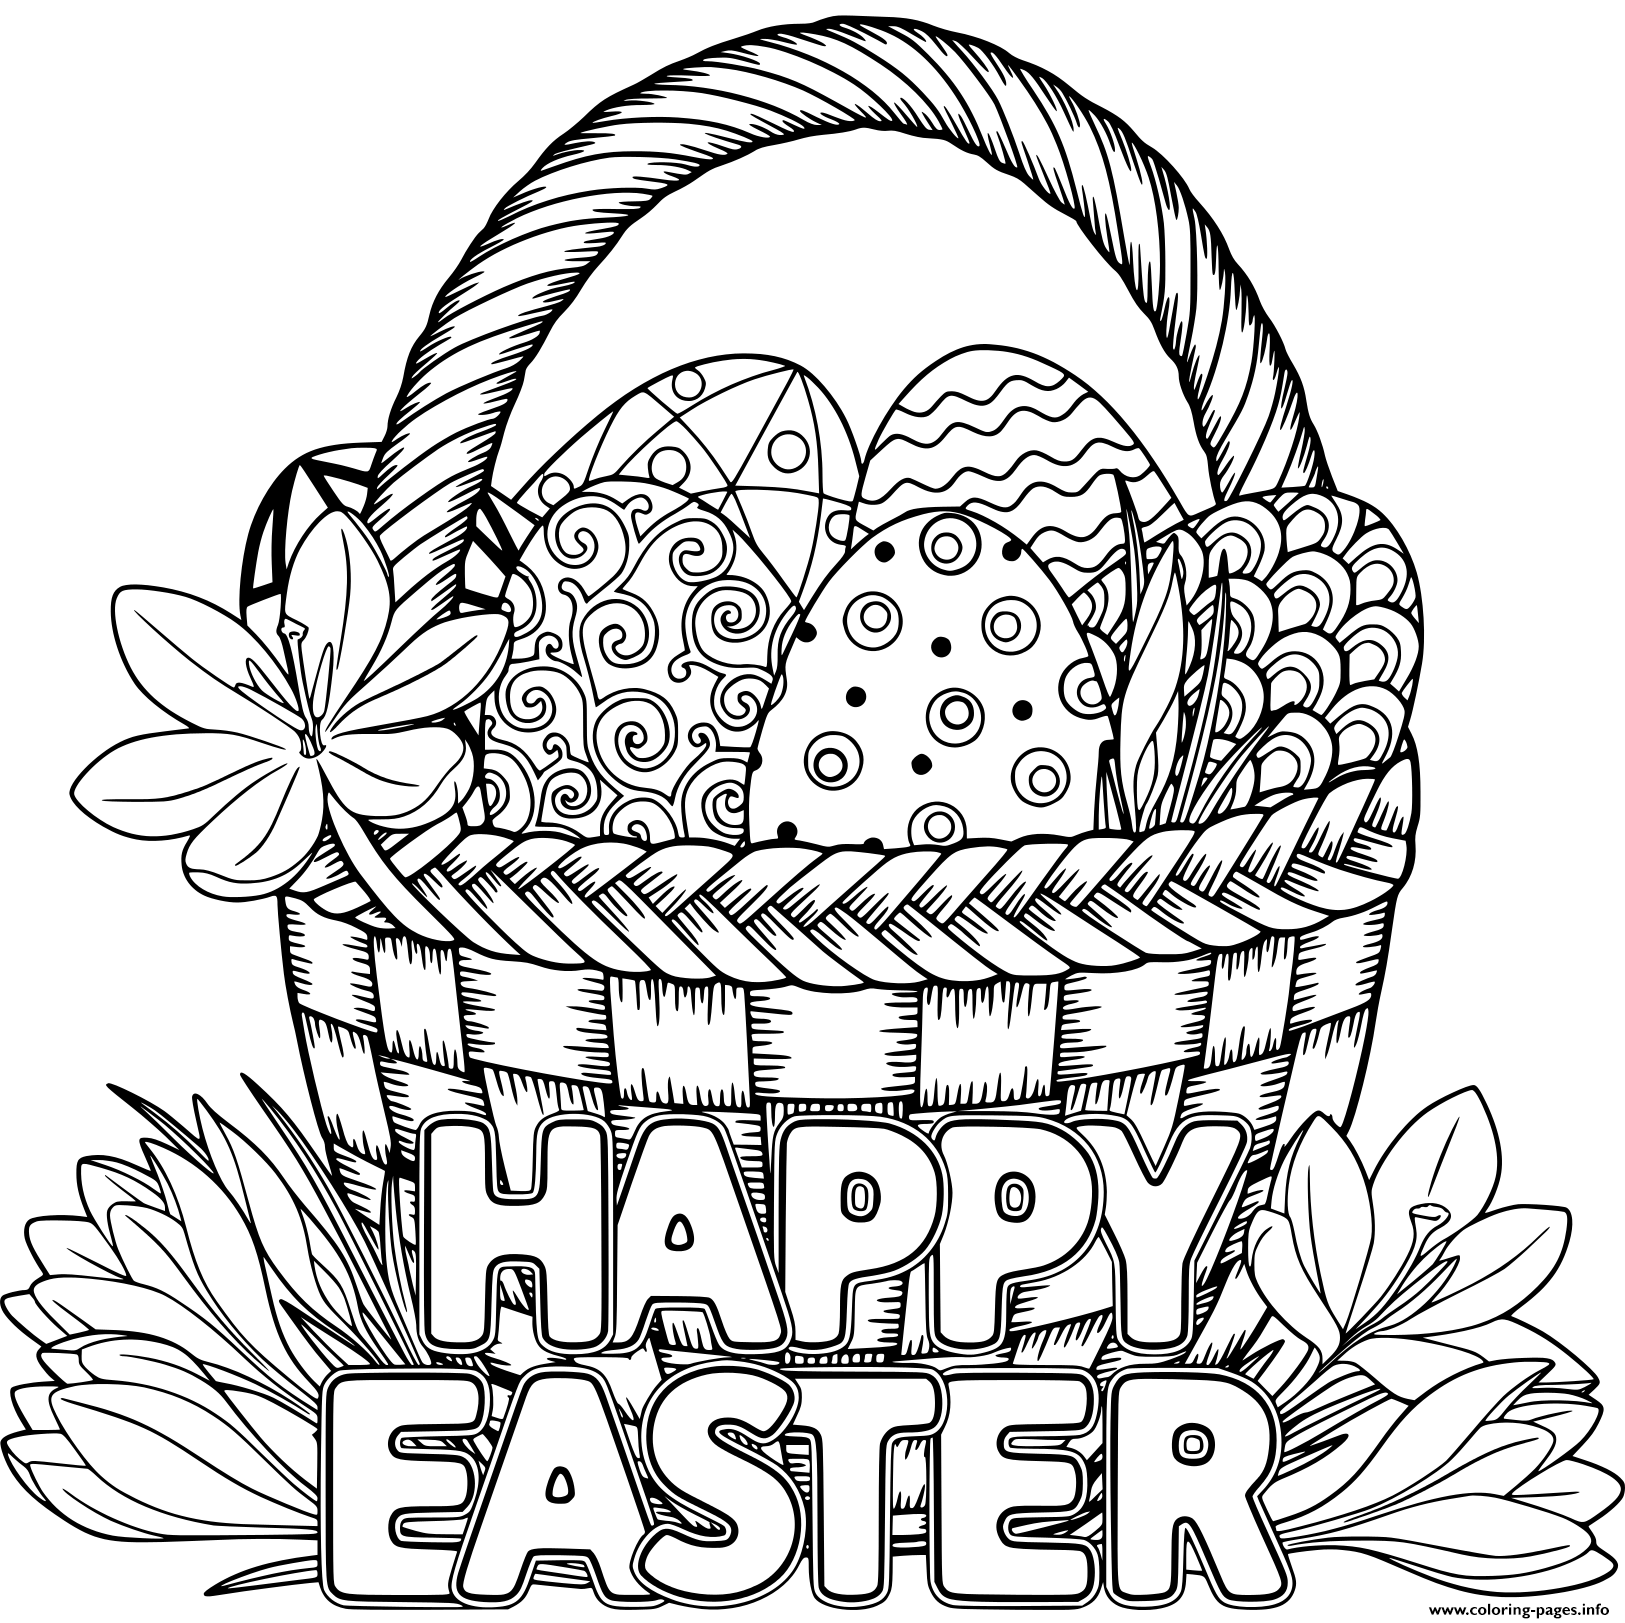 Print basket egg adult happy easter coloring pages (With ...